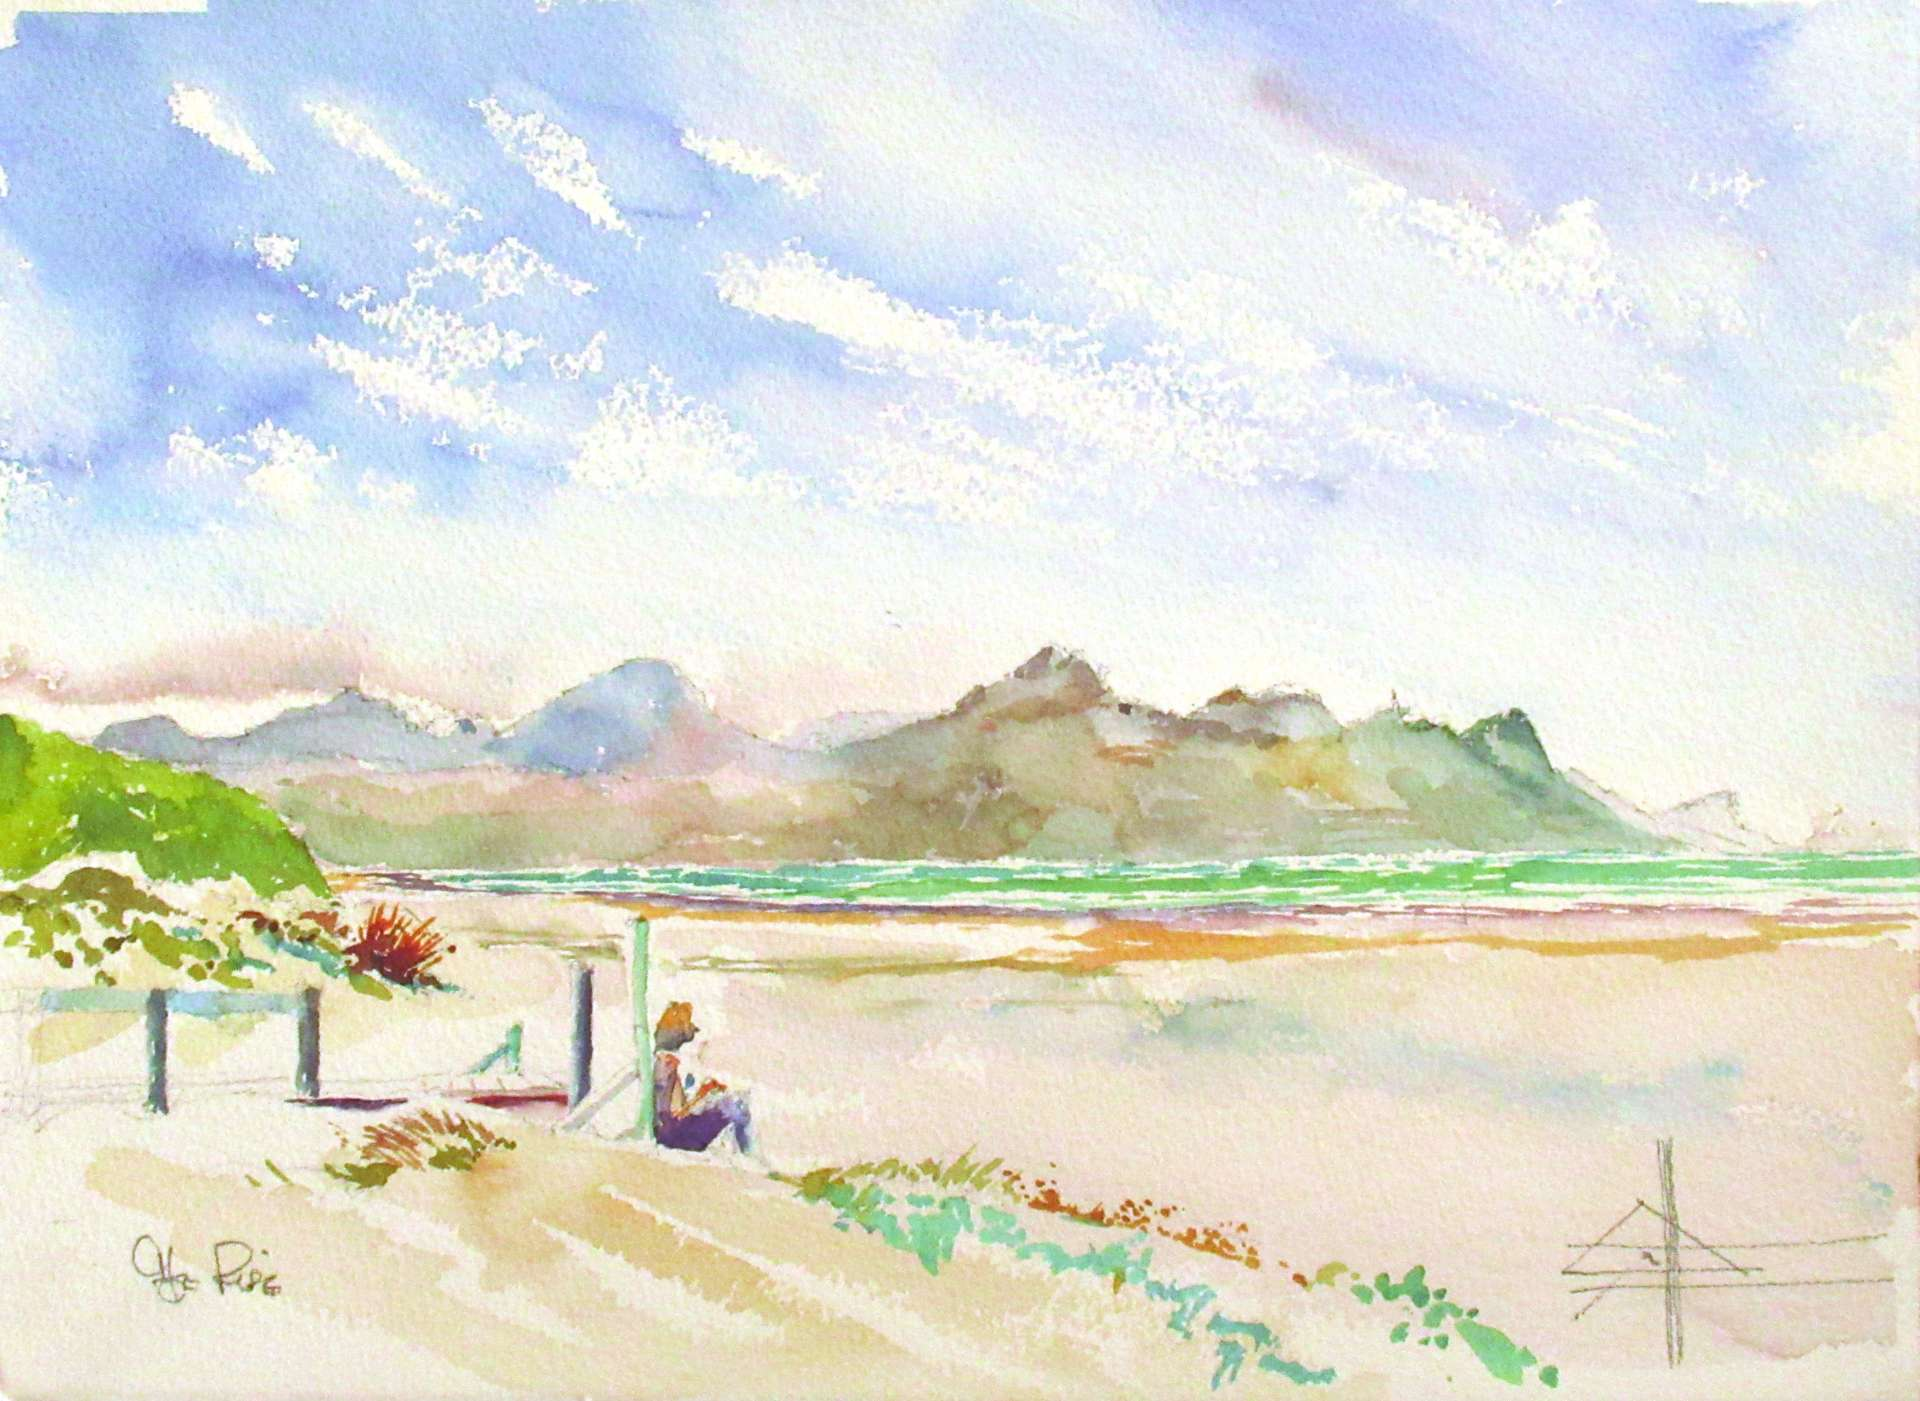 The Boardwalk at the Pipe on Strand Beach Watercolour